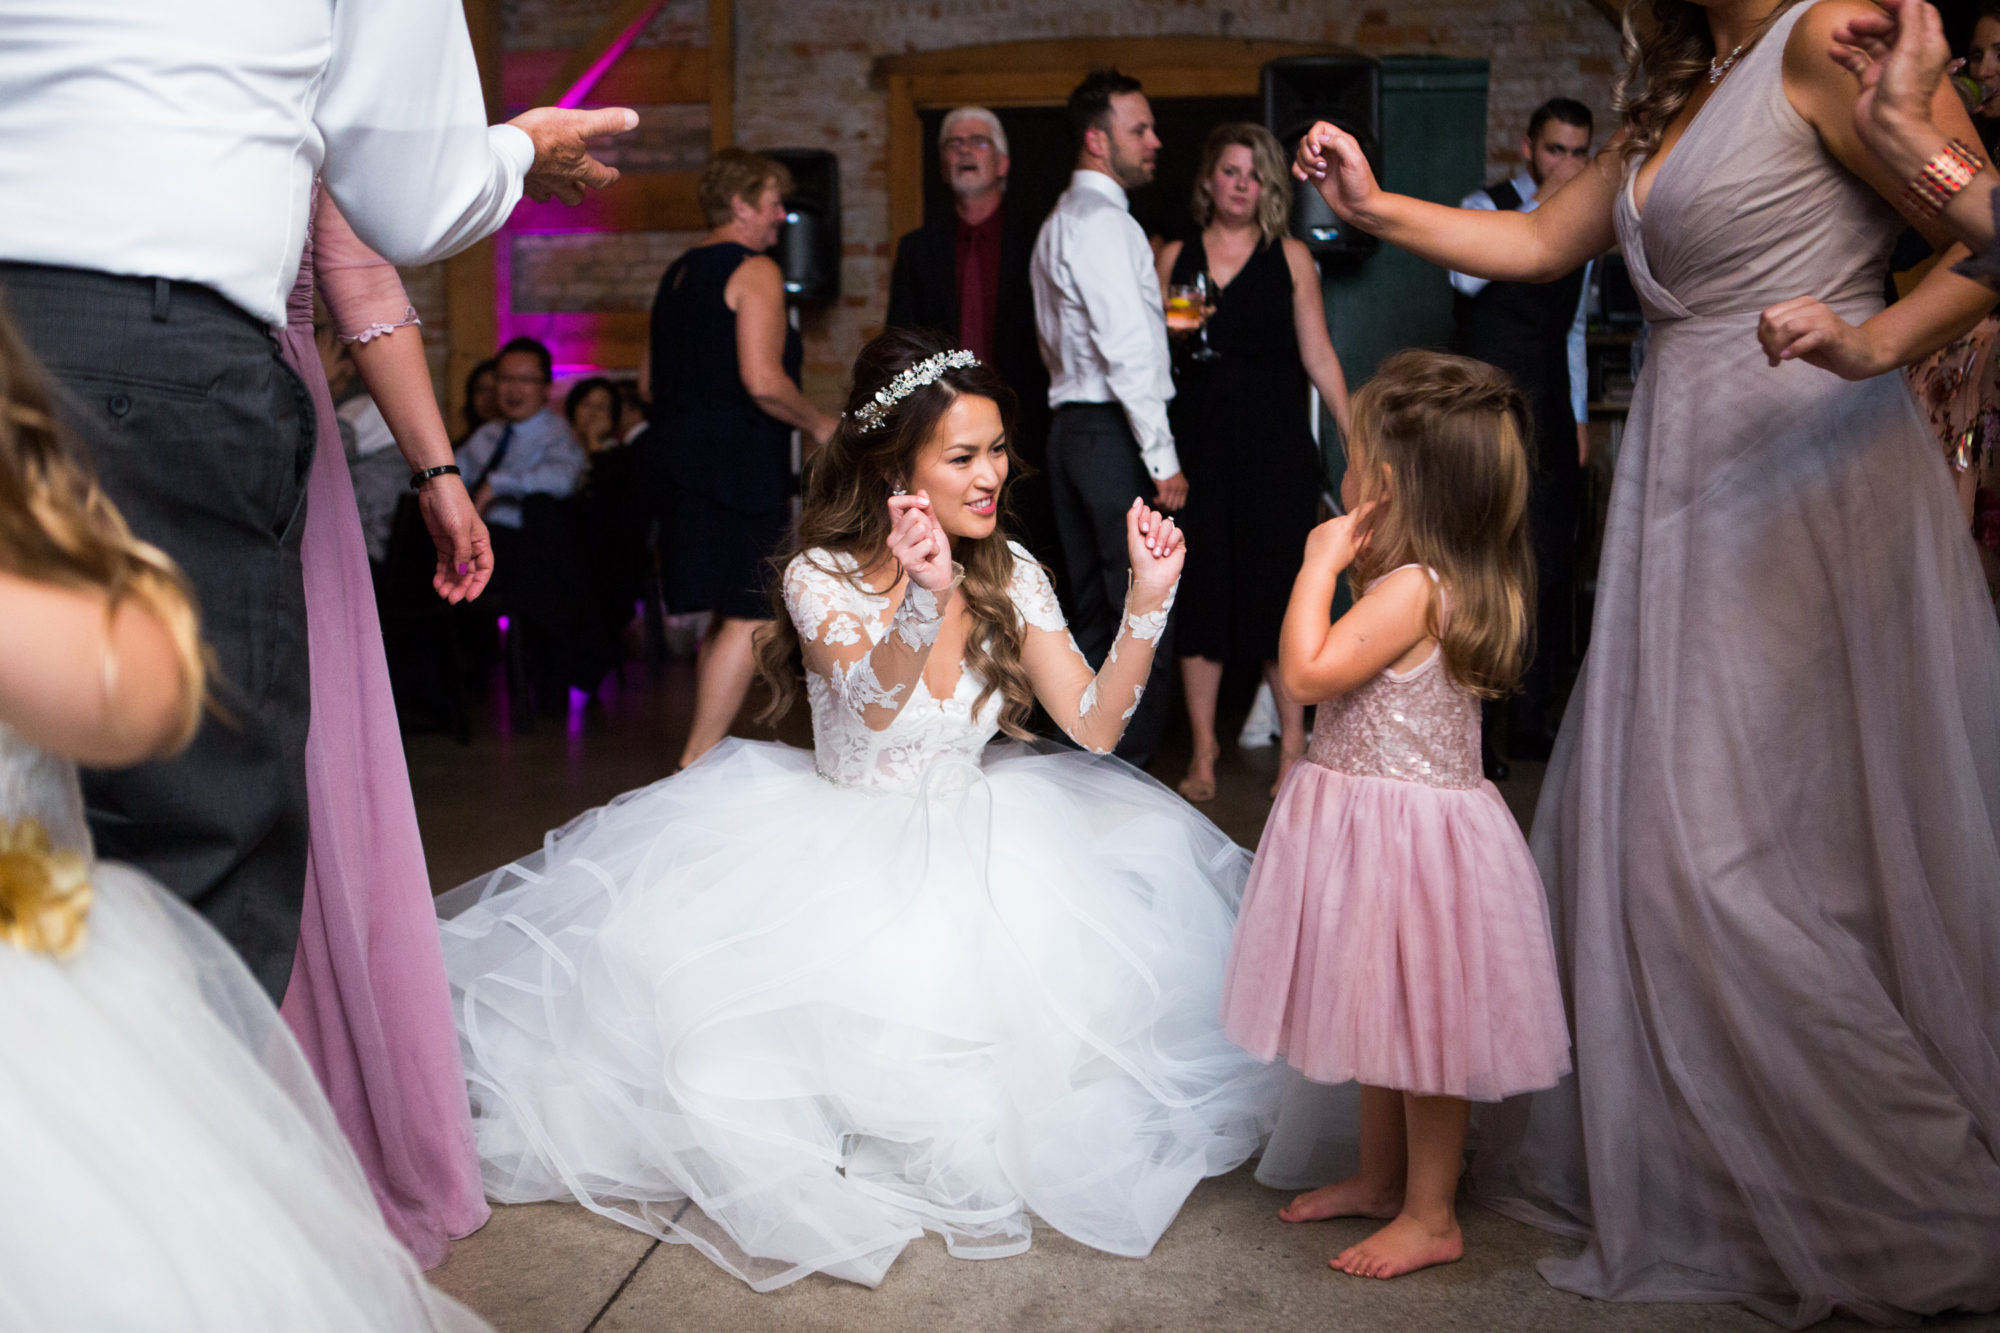 Bride Flower Girl Dance Reception Archeo Toronto Wedding Zsuzsi Pal Photography